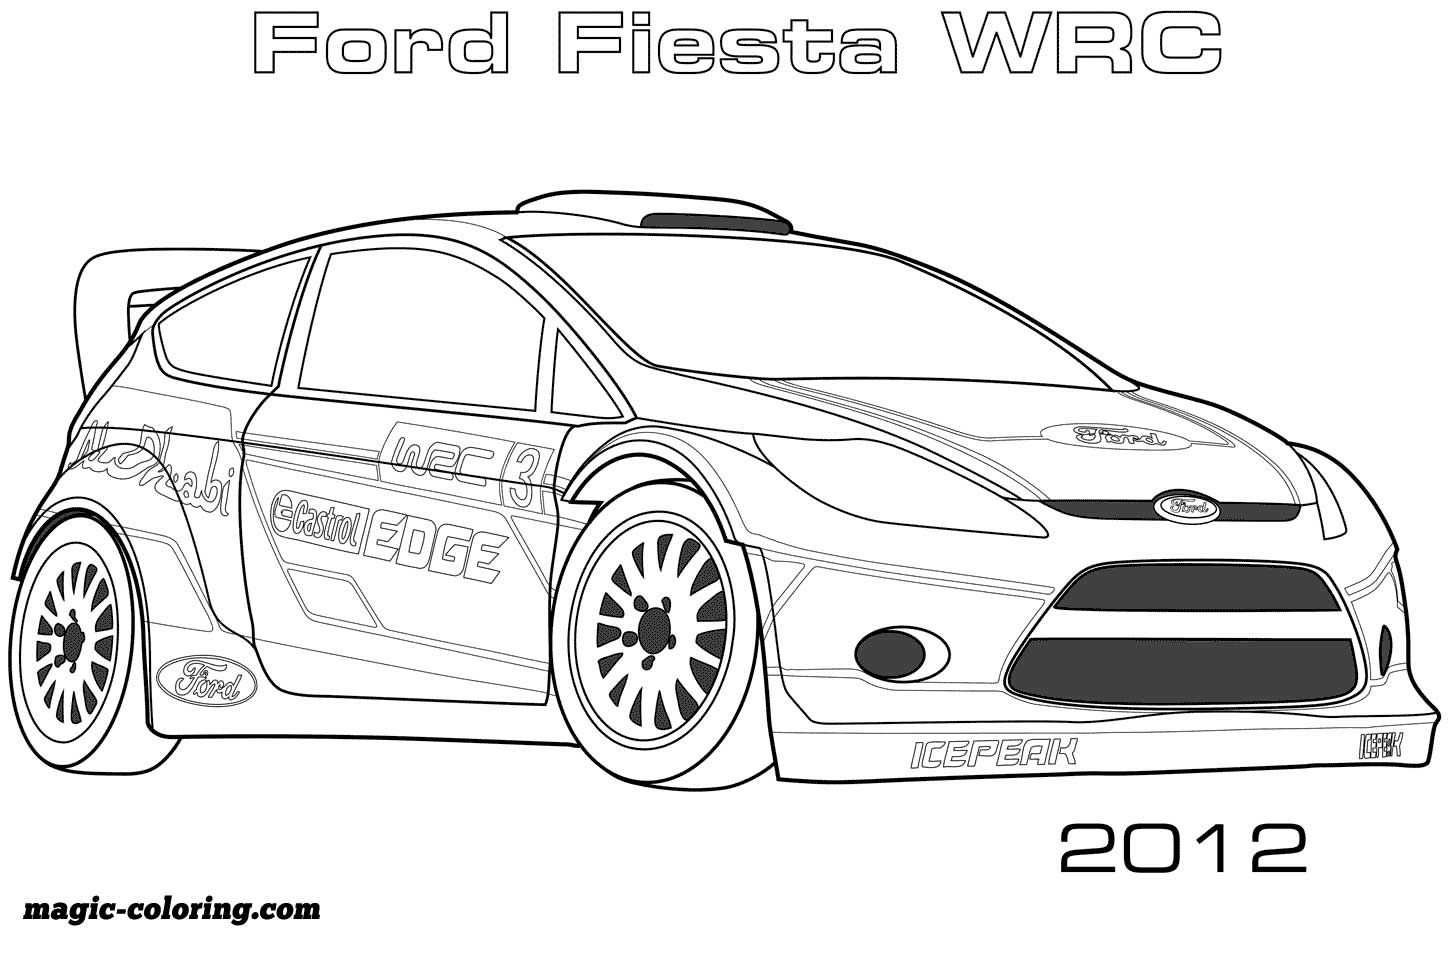 Transportation Coloring Pages Race Car Coloring Pages Cars